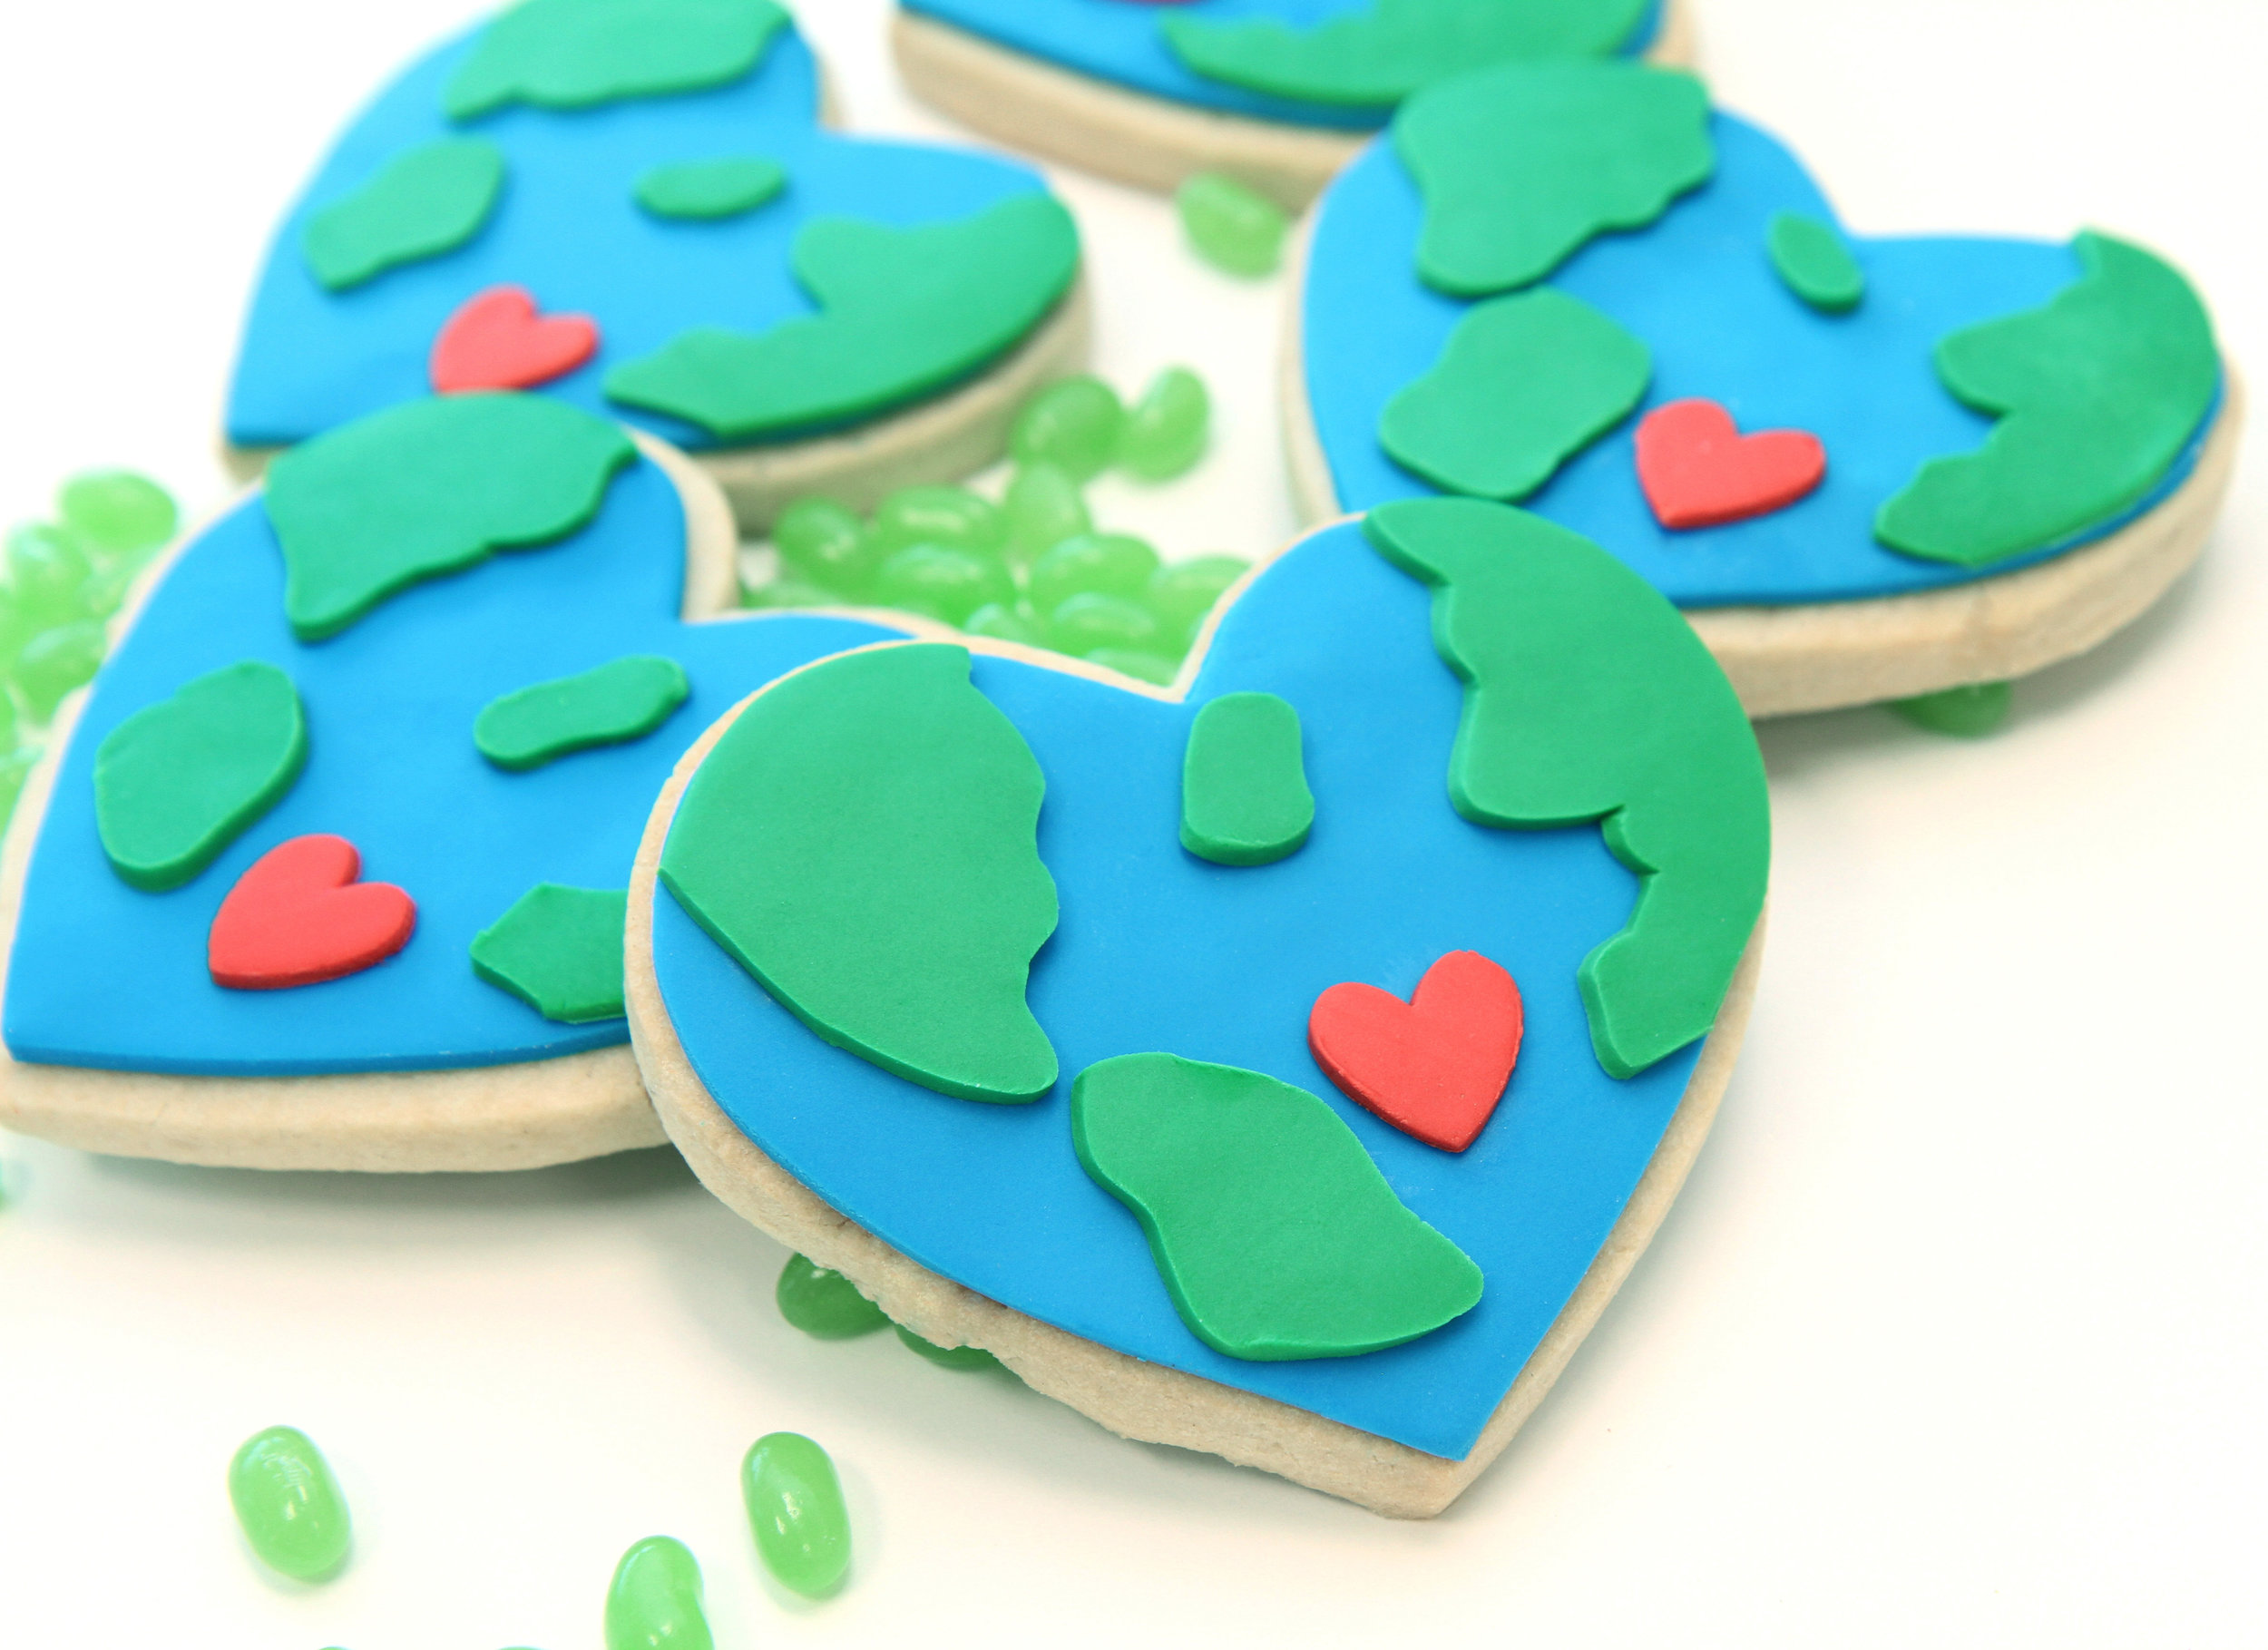 earth-cookies-final-2_REV.jpg